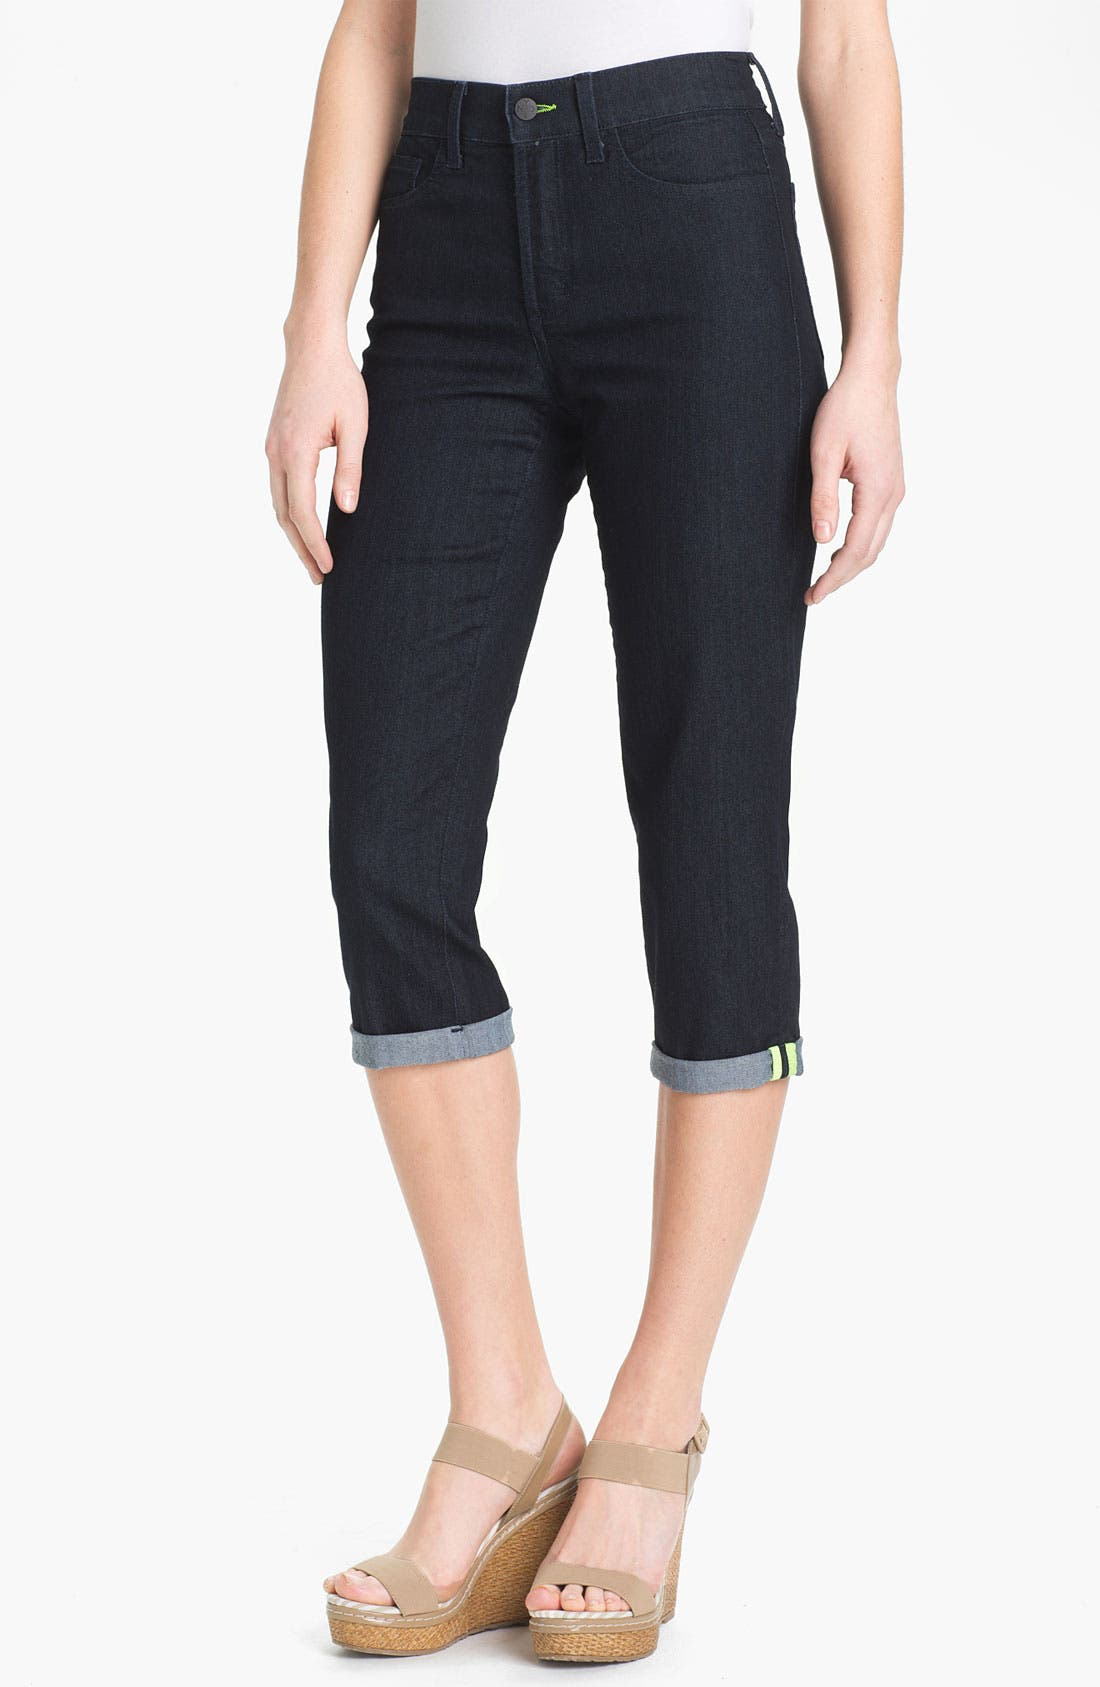 Alternate Image 1 Selected - NYDJ 'Fiona' Roll Cuff Crop Jeans